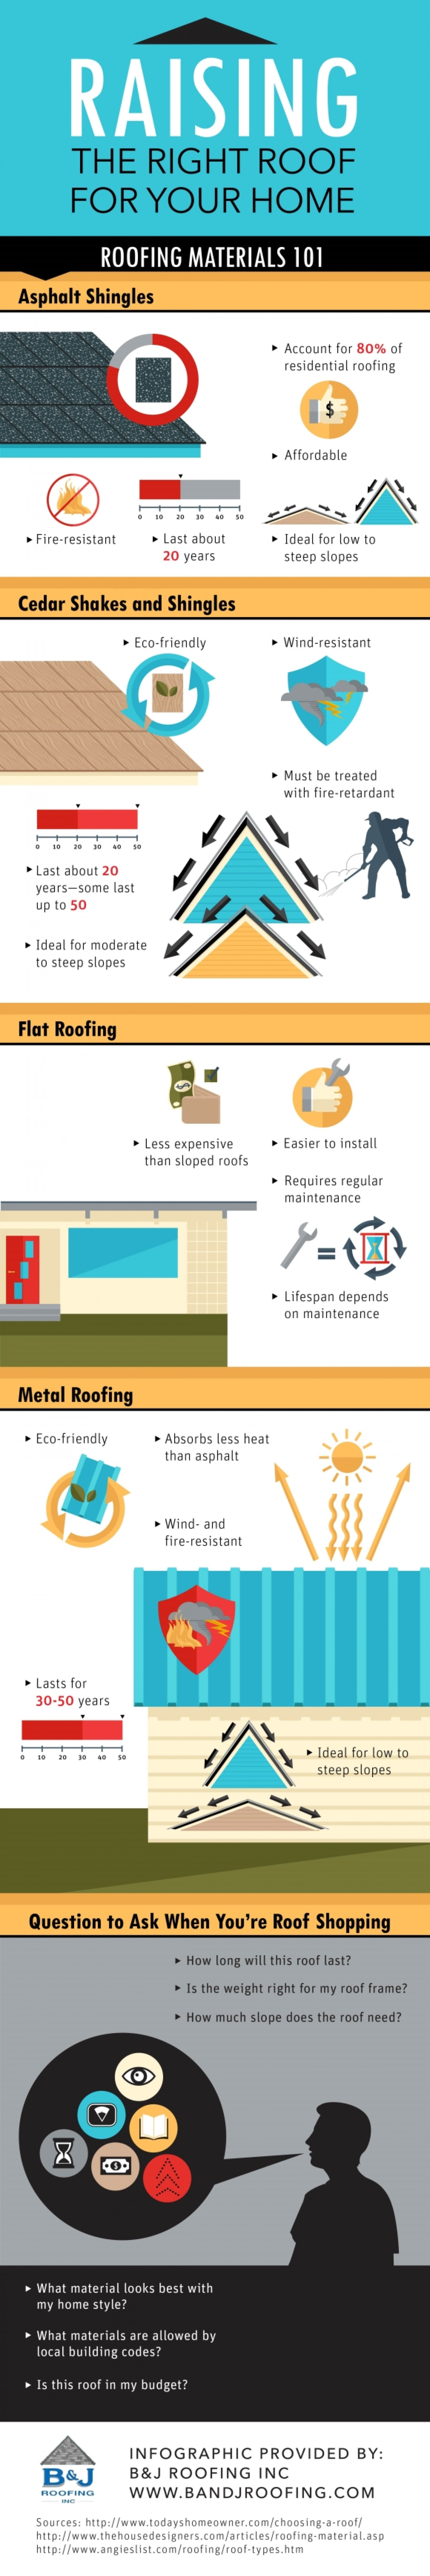 Raising the Right Roof for Your Home Infographic